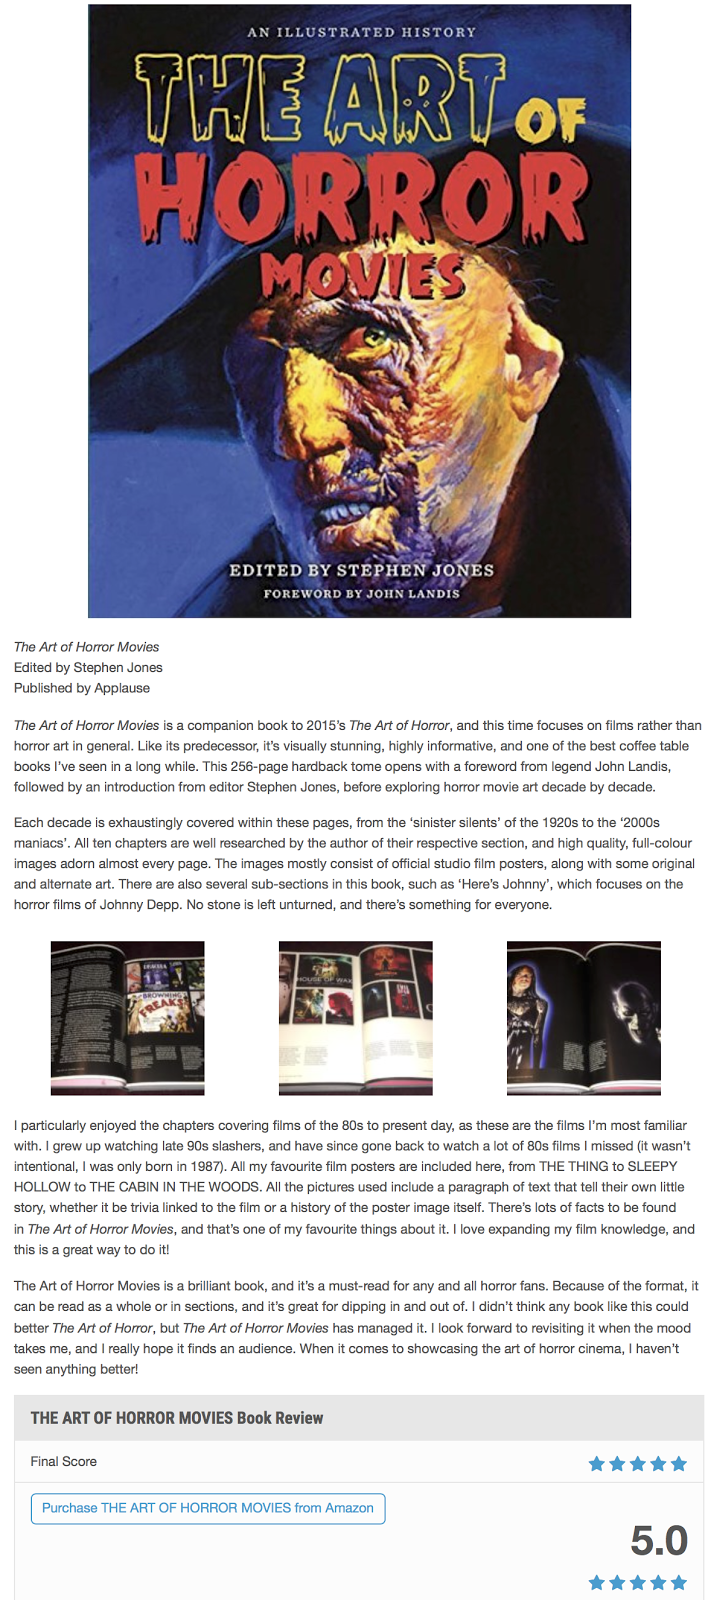 the art of horror films Free shipping details the art of horror: an illustrated history by stephen jones hardcover $3066 in stock ships from and sold by amazoncom editorial reviews review a comprehensive journey through the history of horror films --los angeles times the art of horror movies: an illustrated.